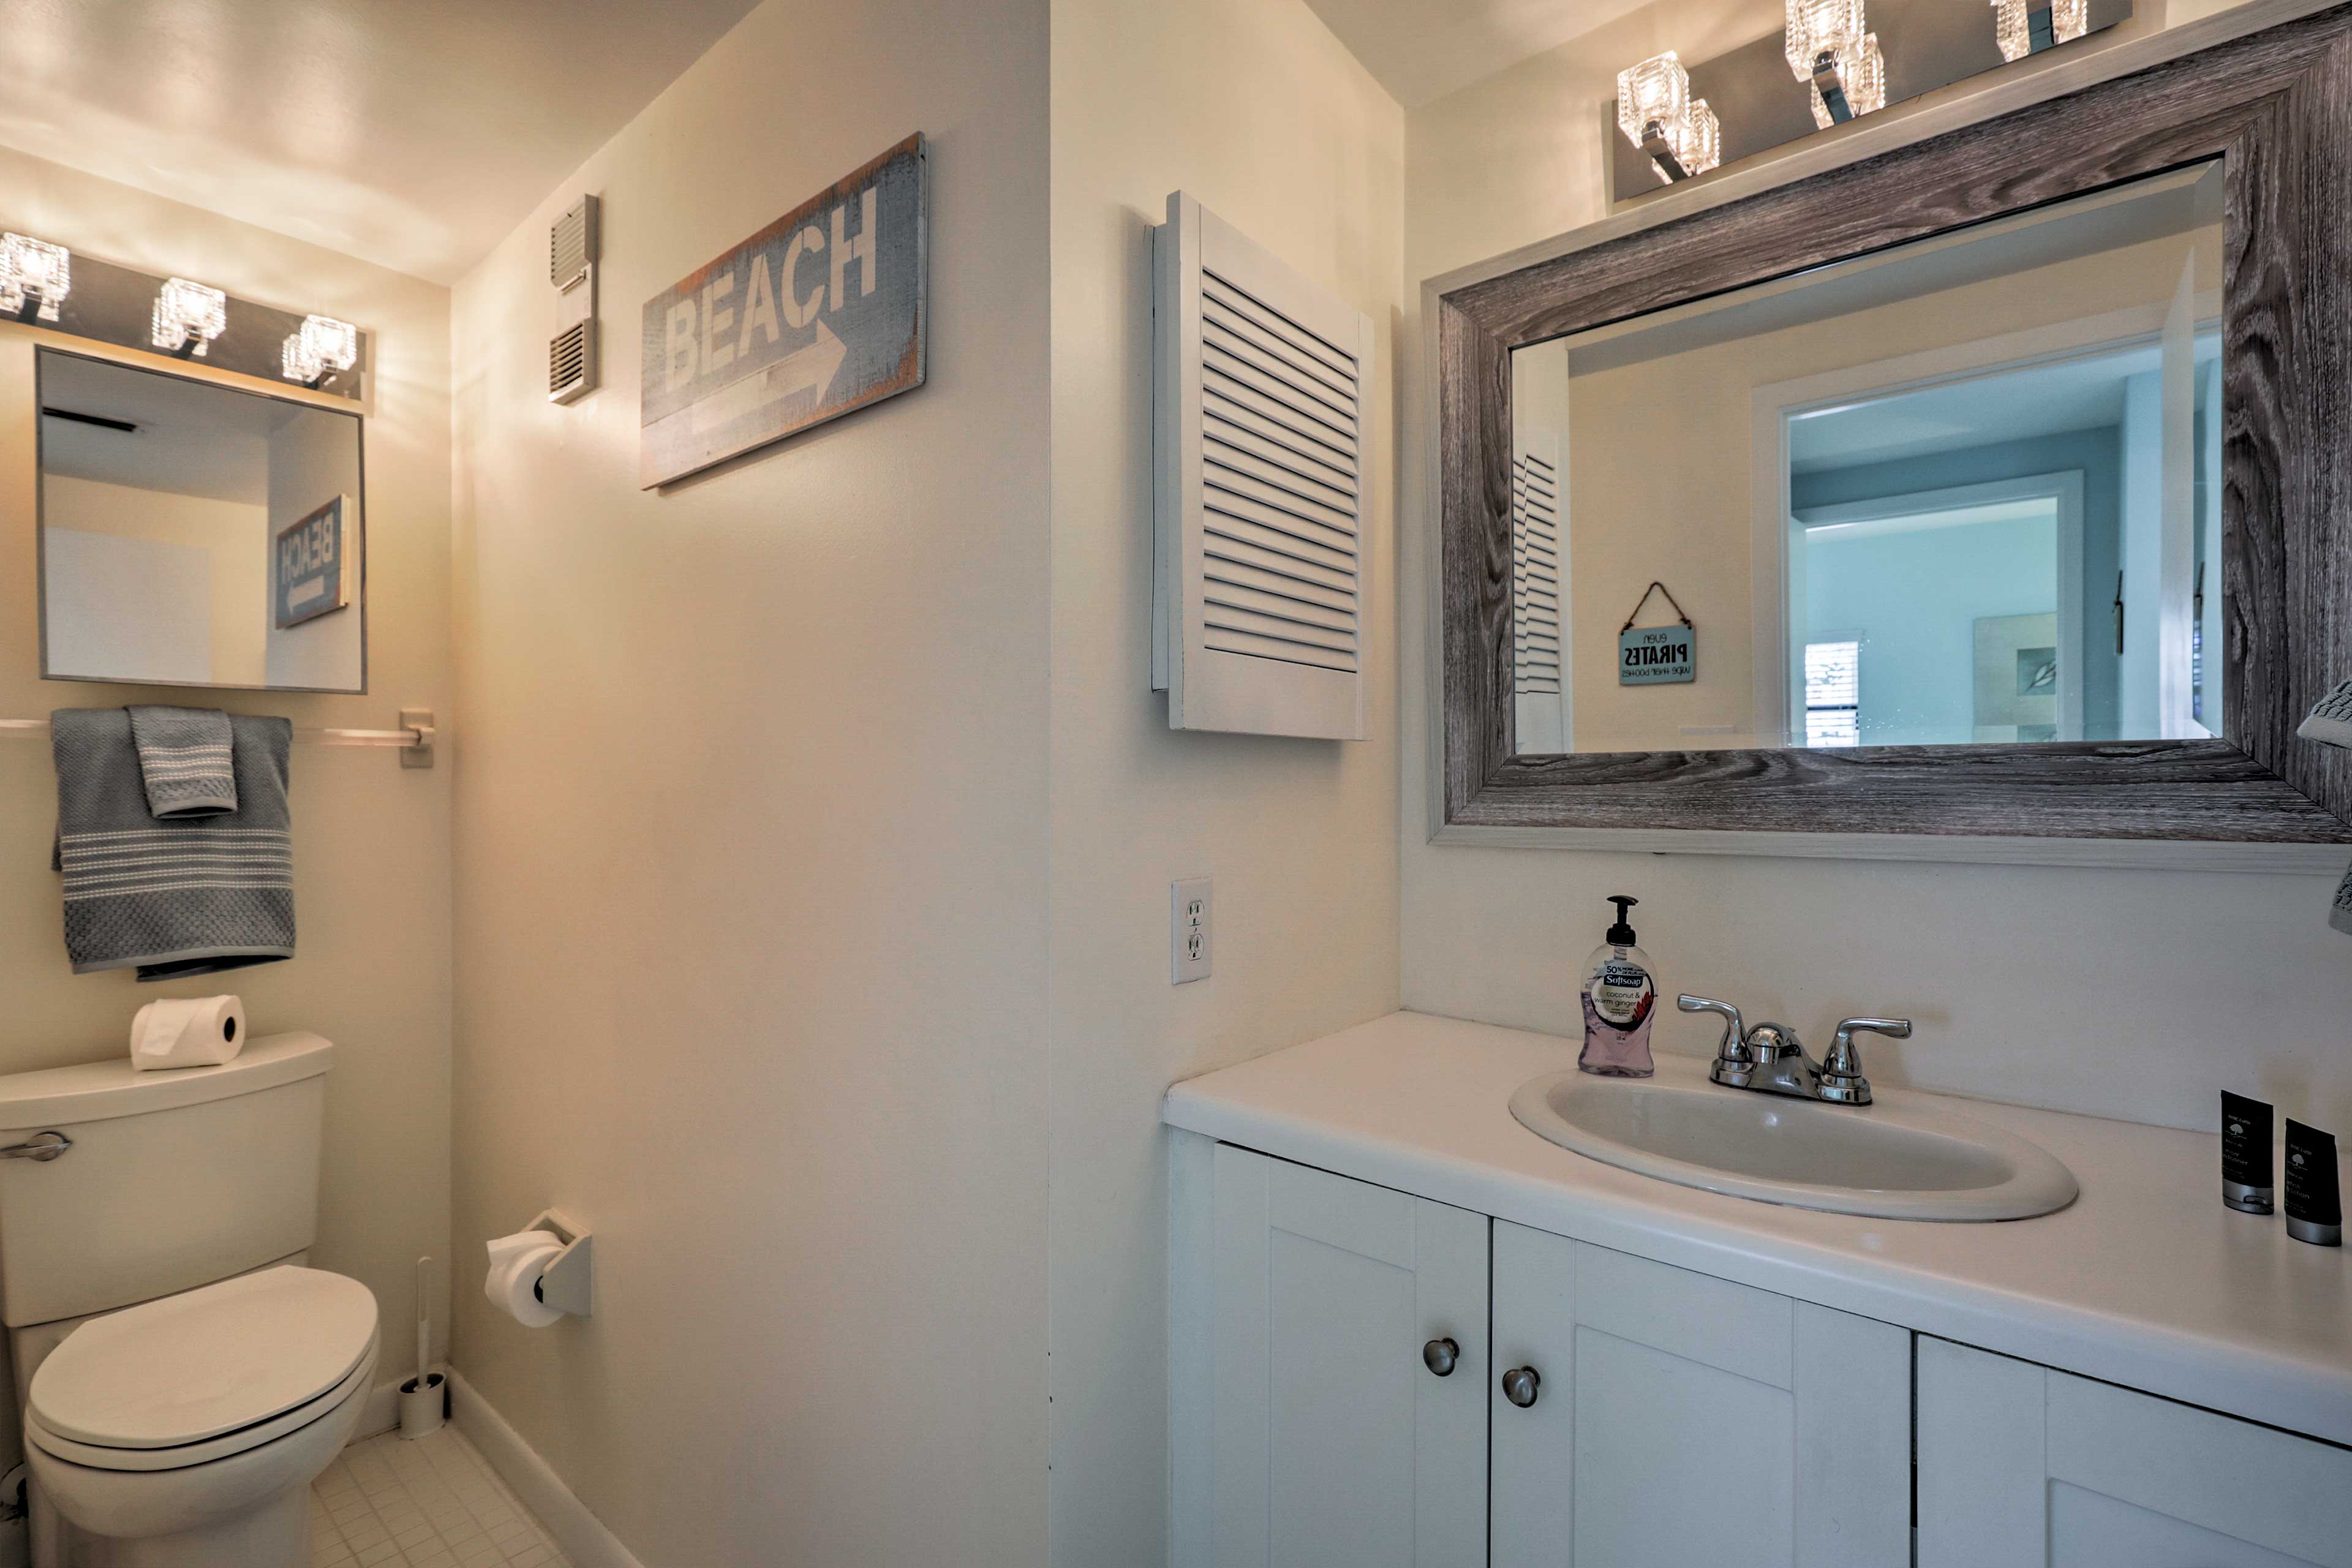 The spacious full bathroom is furnished with beach-inspired decor.